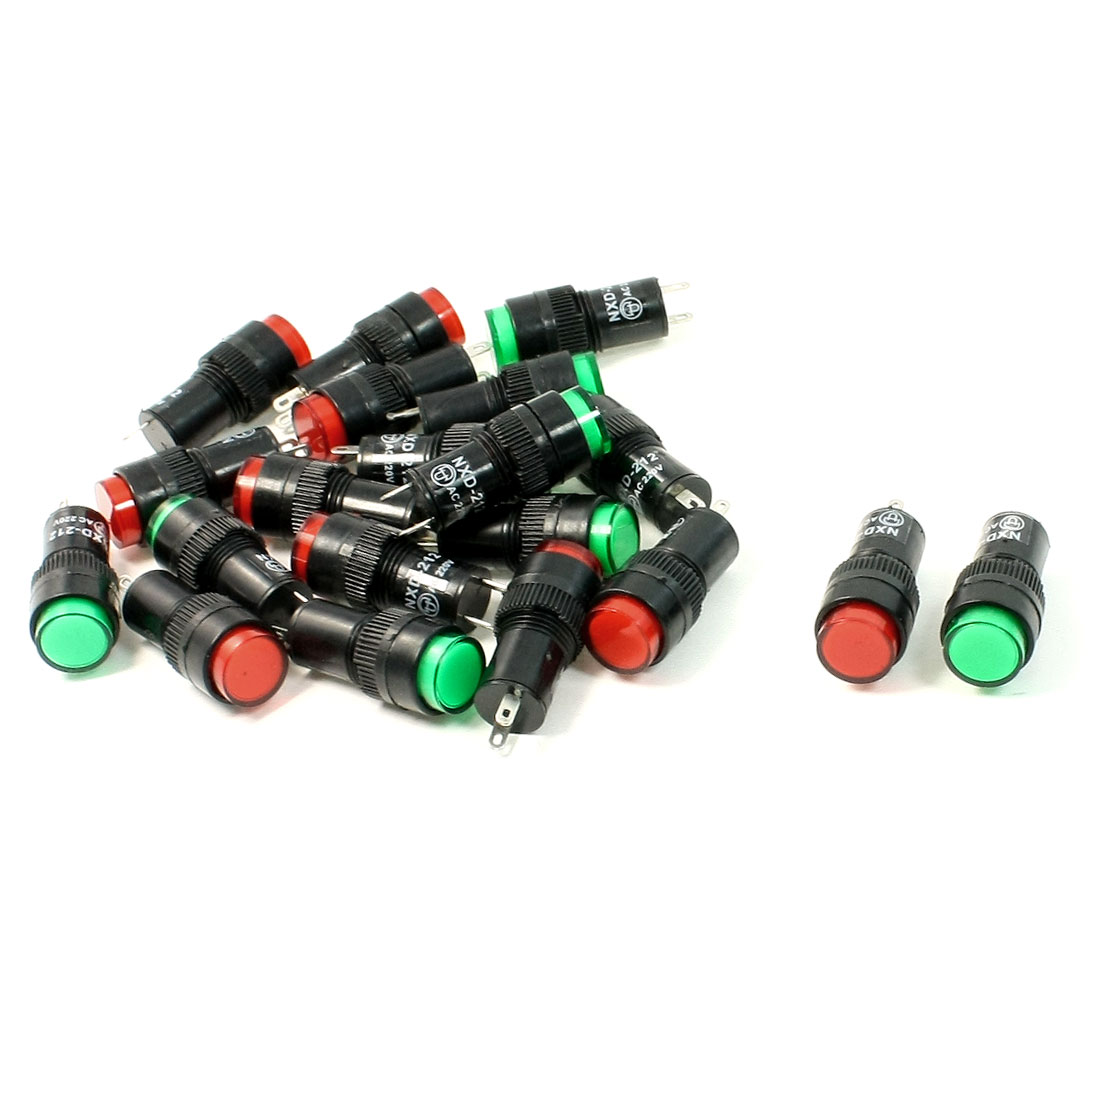 20 Pcs AC 220V Red Green Round Cap Indicator Light Pilot Lamp